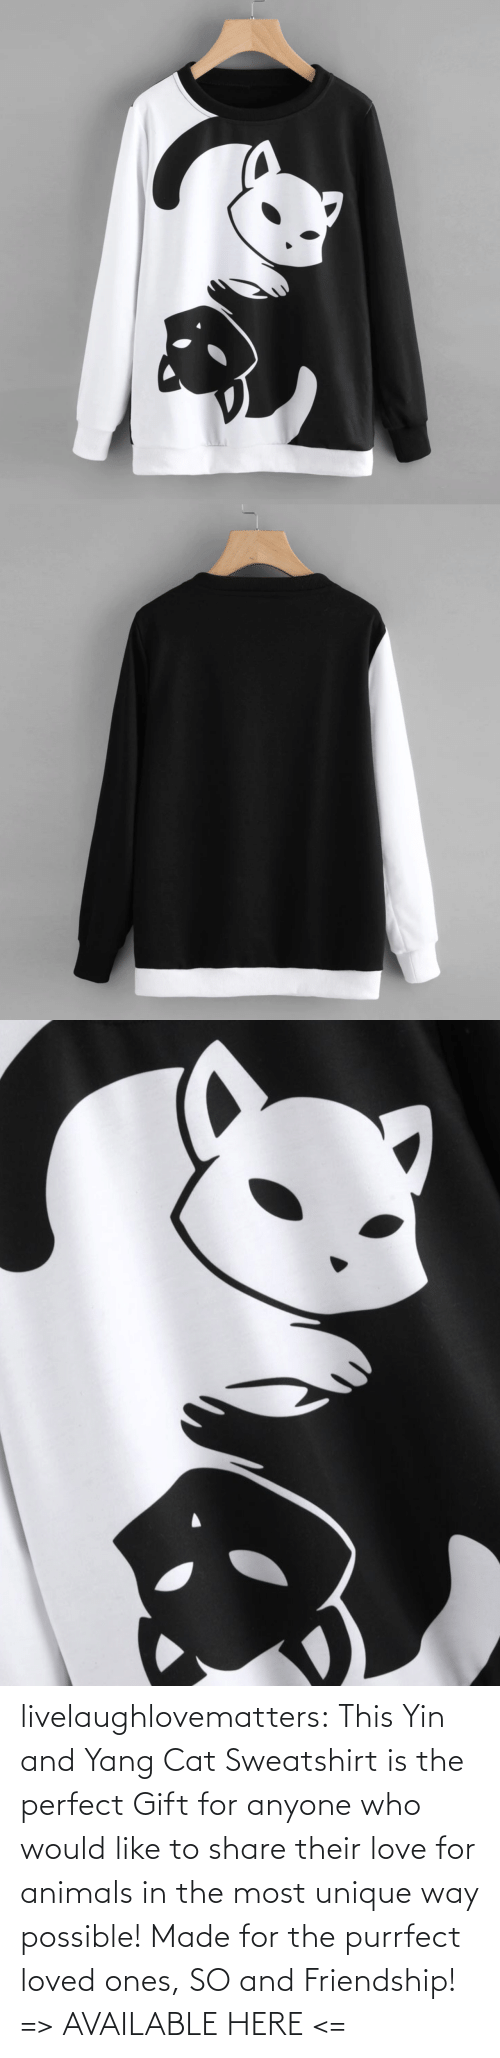 Black: livelaughlovematters:  This Yin and Yang Cat Sweatshirt is the perfect Gift for anyone who would like to share their love for animals in the most unique way possible! Made for the purrfect loved ones, SO and Friendship!  => AVAILABLE HERE <=